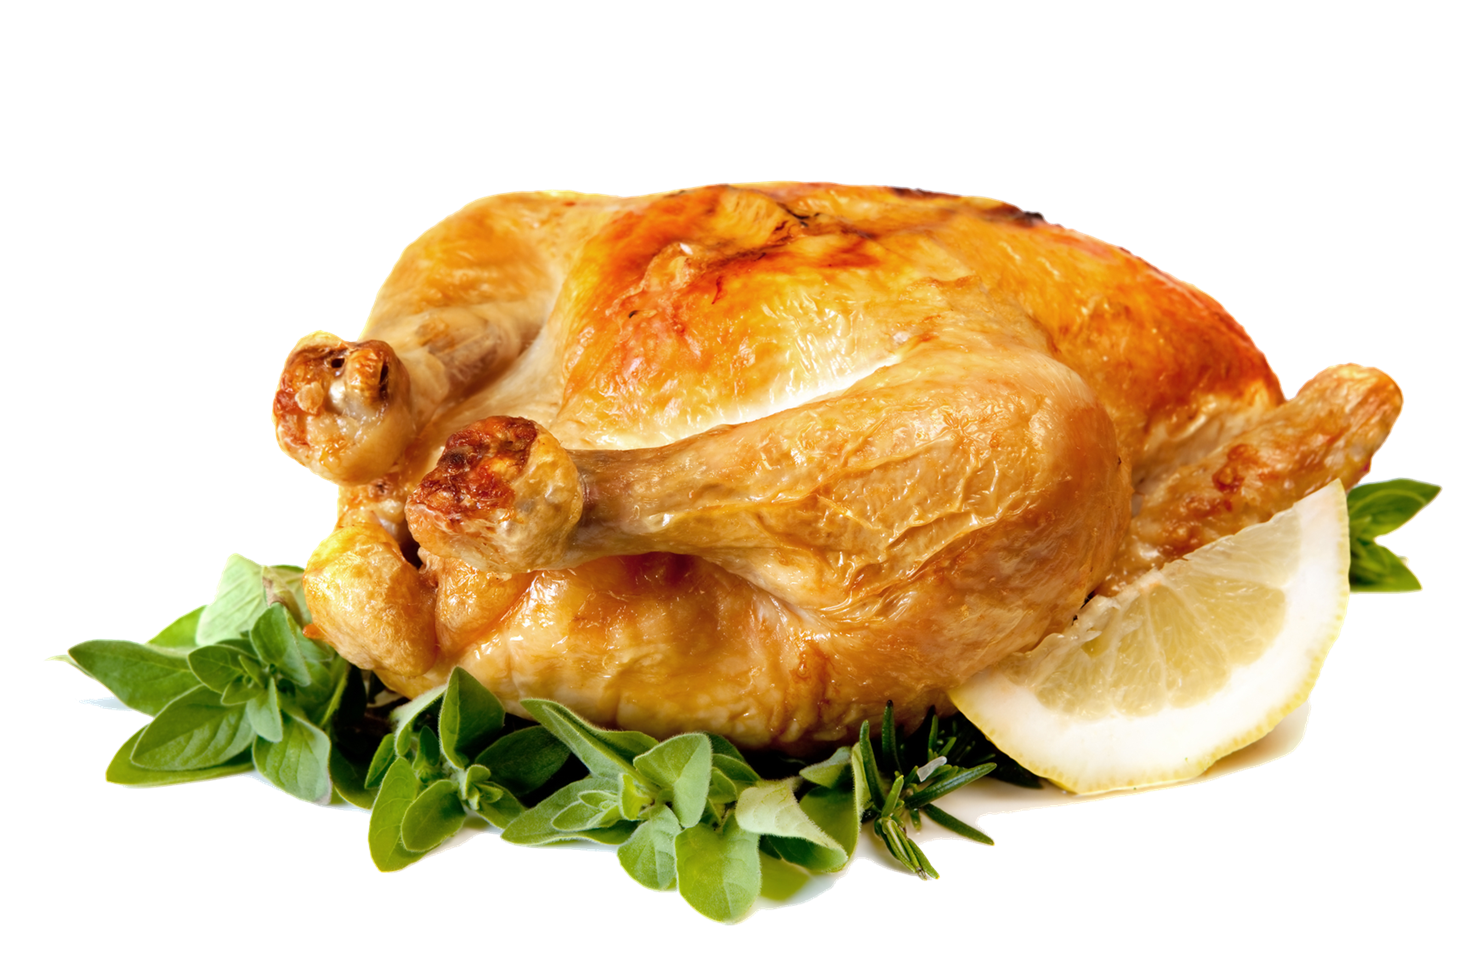 Cooked Chicken Image PNG Image